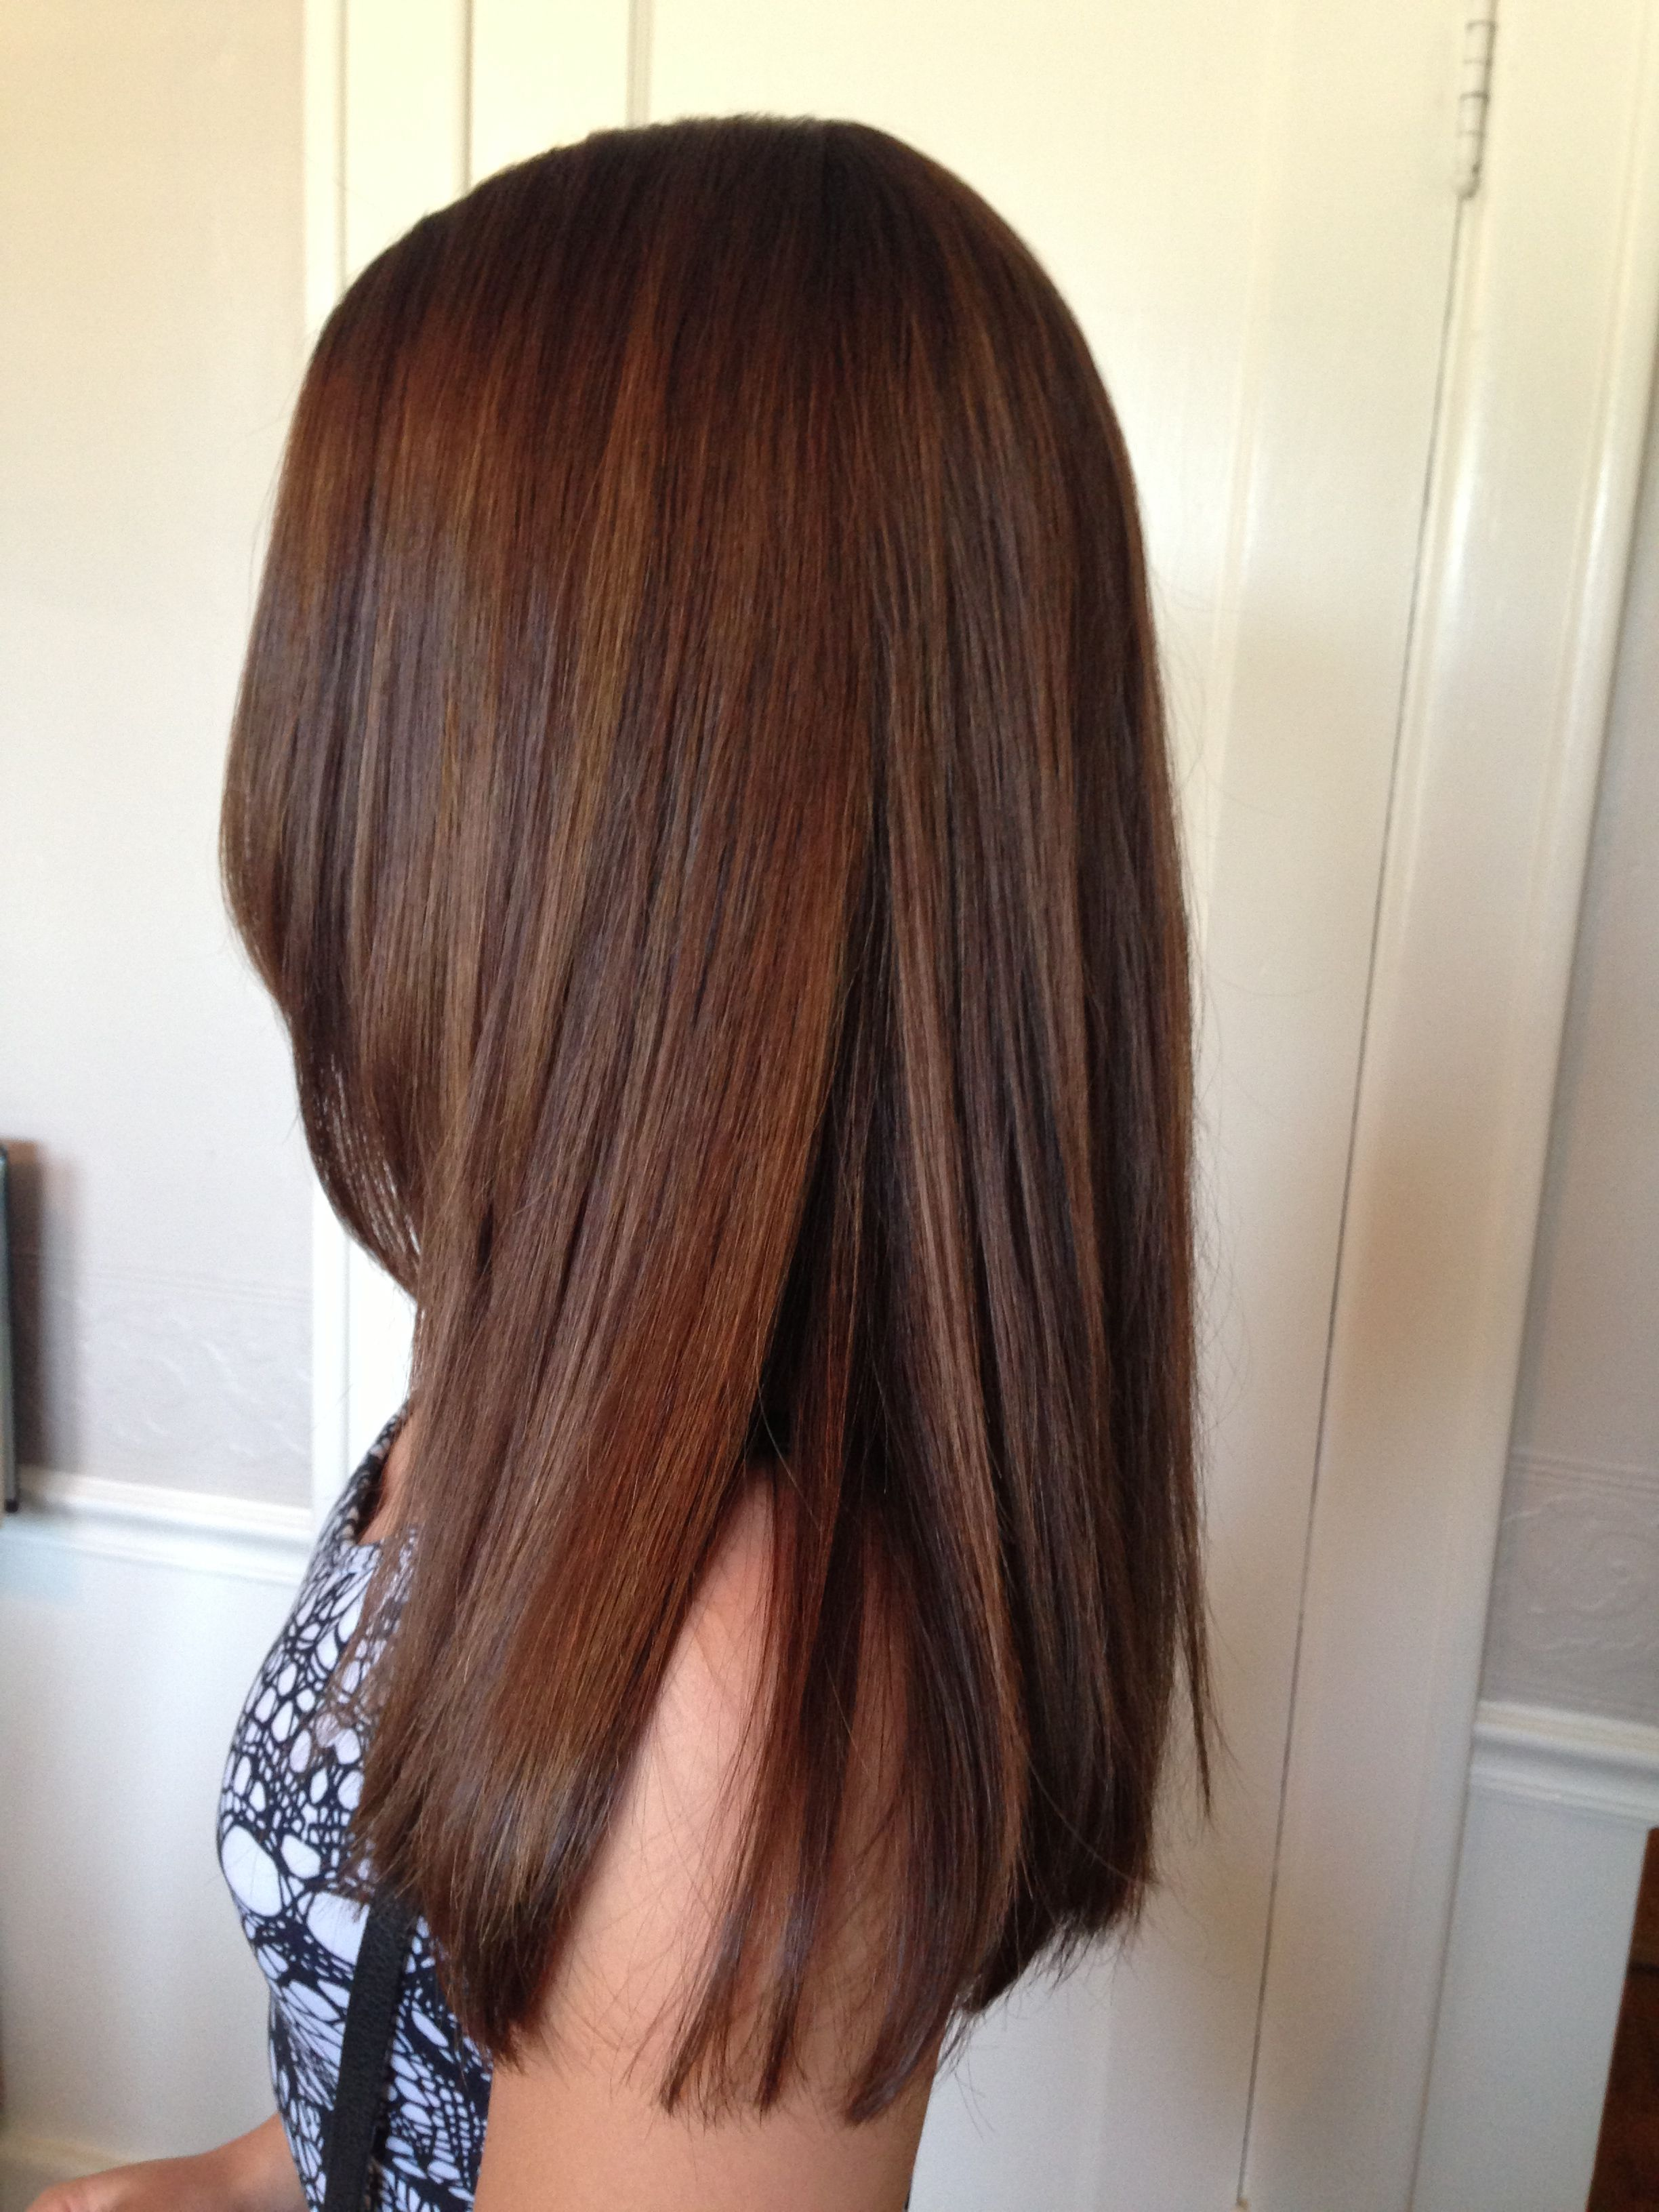 Long Layers Haircut Using Seamless Layering Techniques And Wet Haircutting Along With Dry Haircutting Technique Hair Styles Brunette Hair Color Fall Hair Color